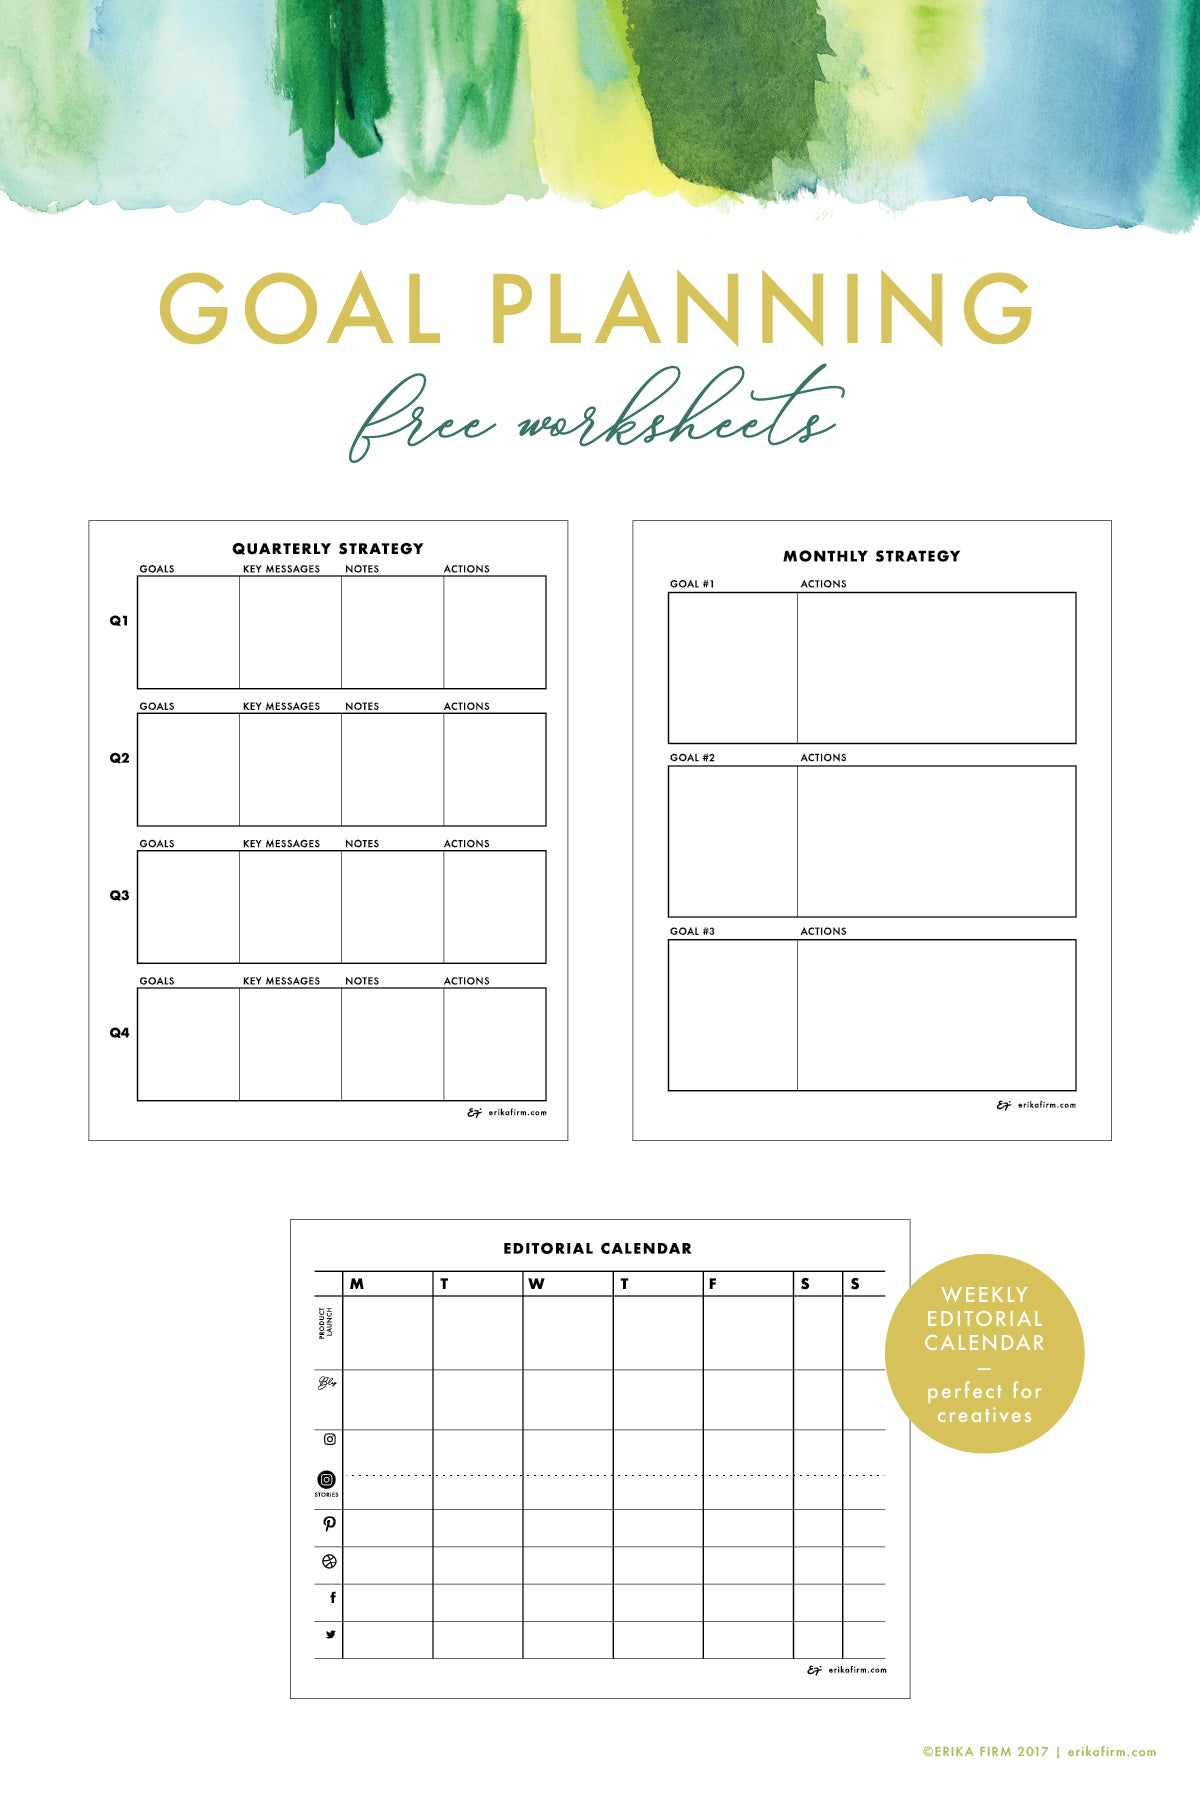 Free Goal Planning Worksheets for Creatives by Erika Firm